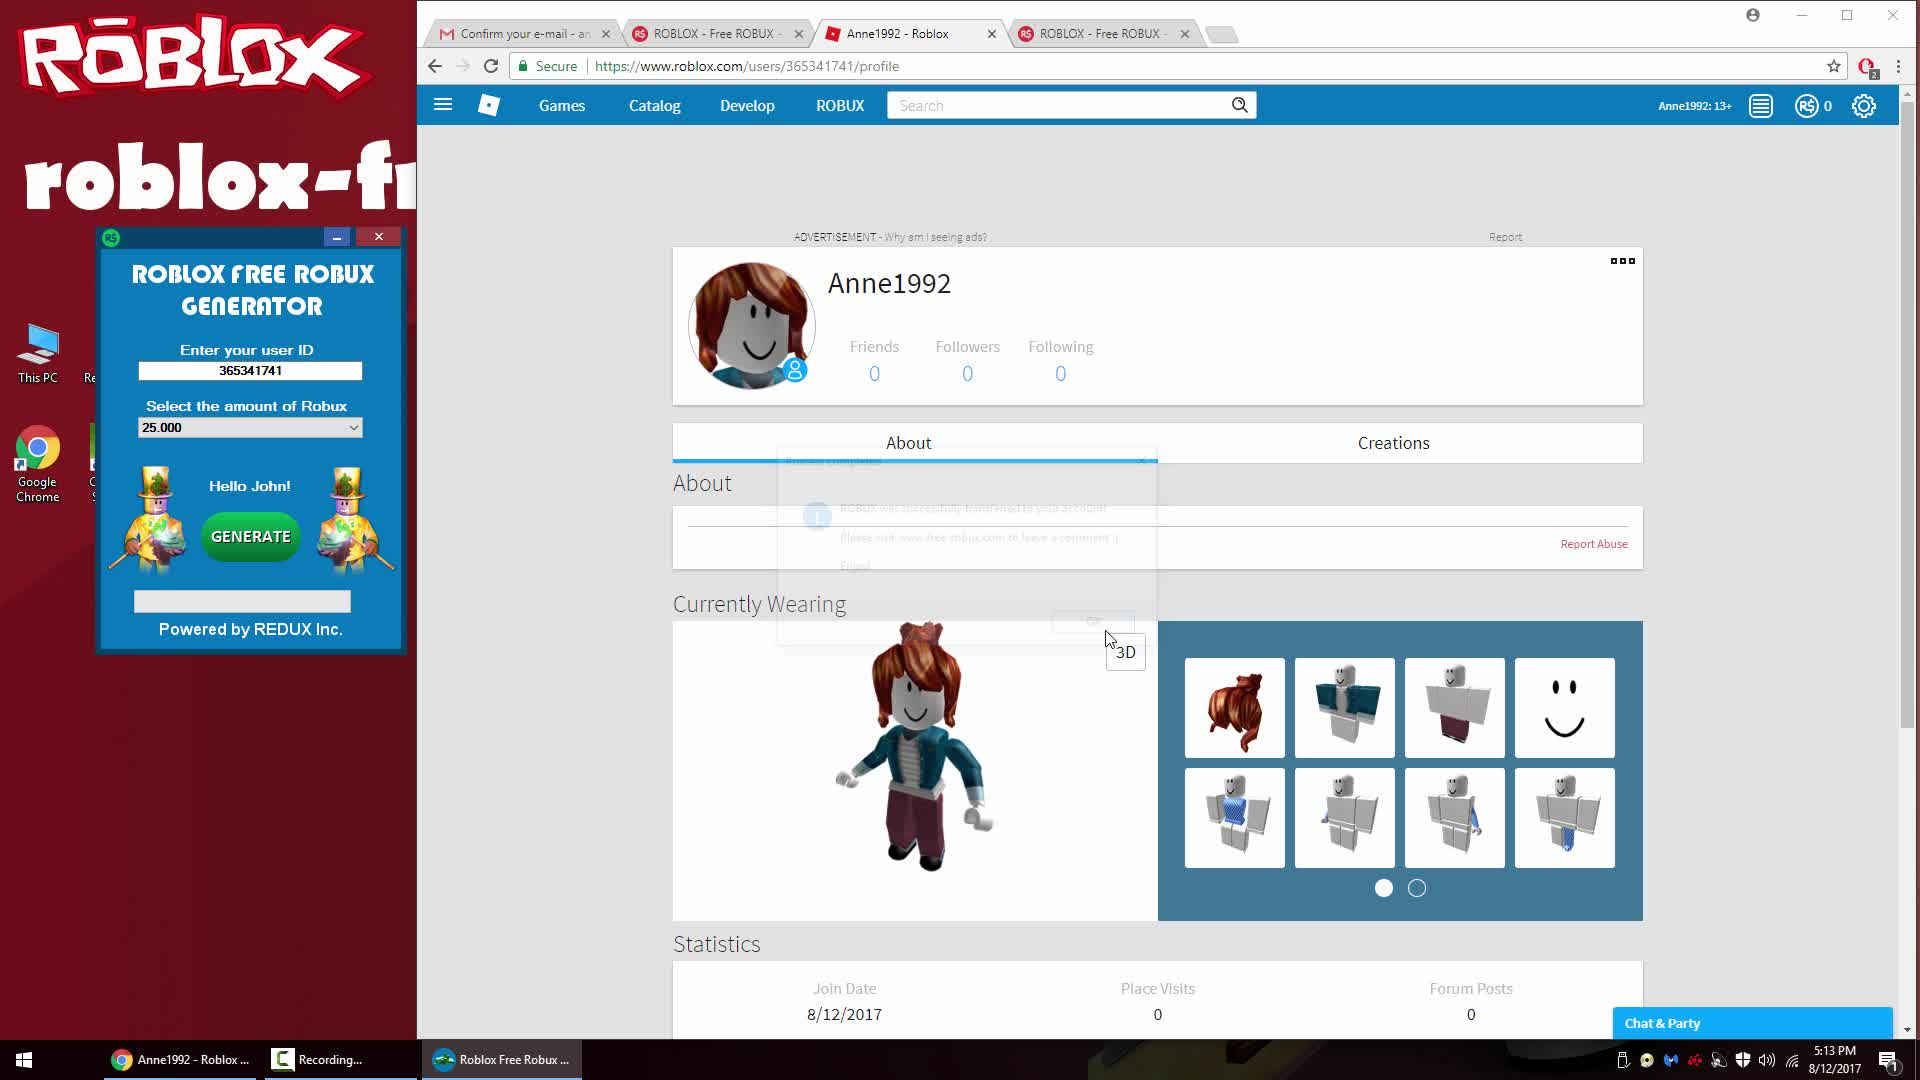 Roblox Robux Hack - Roblox Free Robux - wideo w cda.pl - photo#19